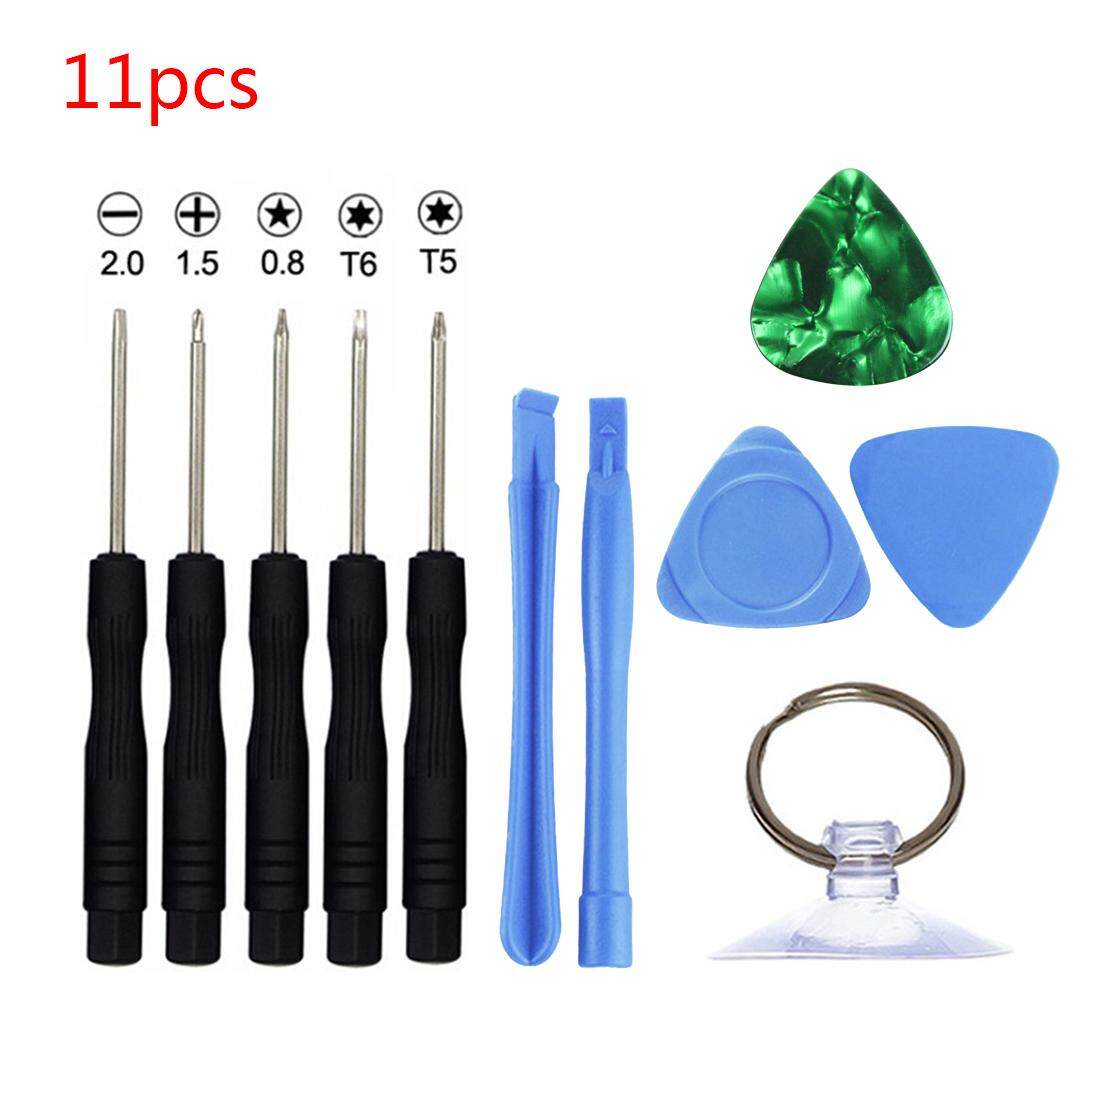 Cellphone Parts For Sale Repair Tools Prices Brands Cell Phone Circuit Board Clamp Fixture Stand Toolsin Tool 11pcs Mobile Spudger Pry Opening Screwdriver Set Hand